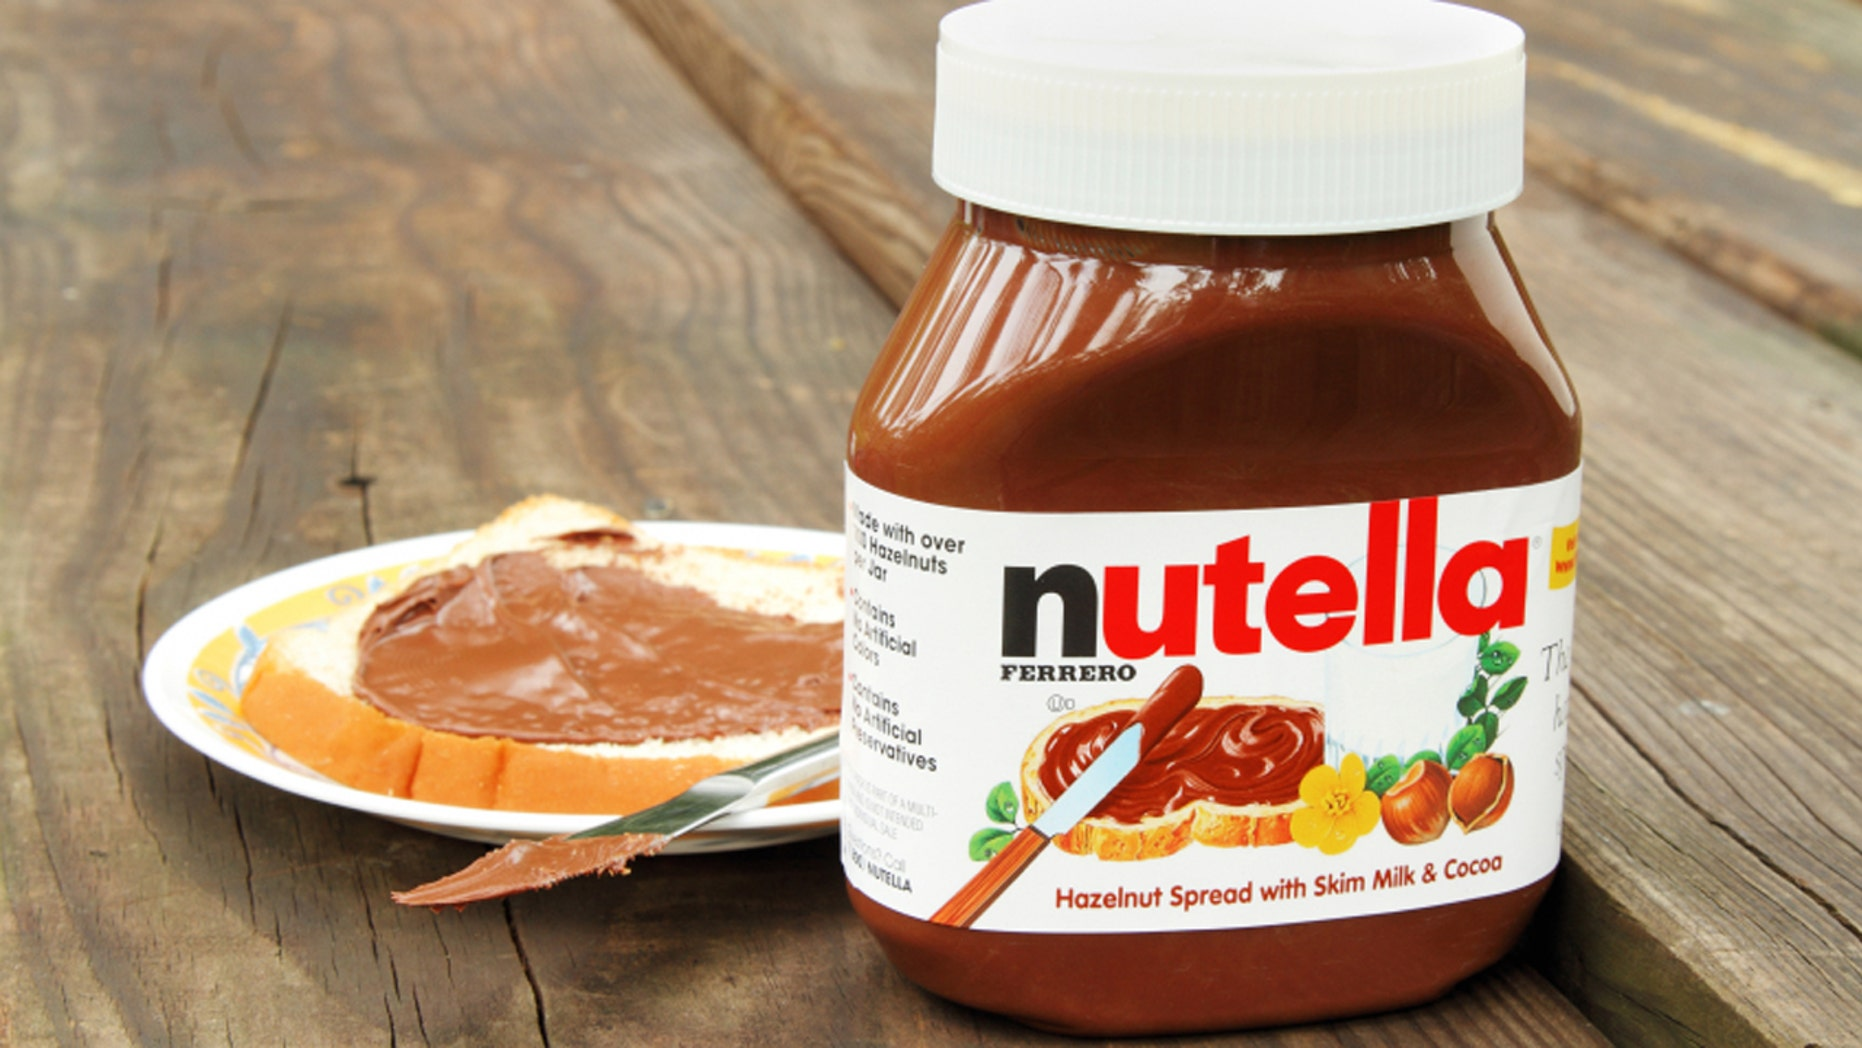 Do you know how to pronounce this popular spread?